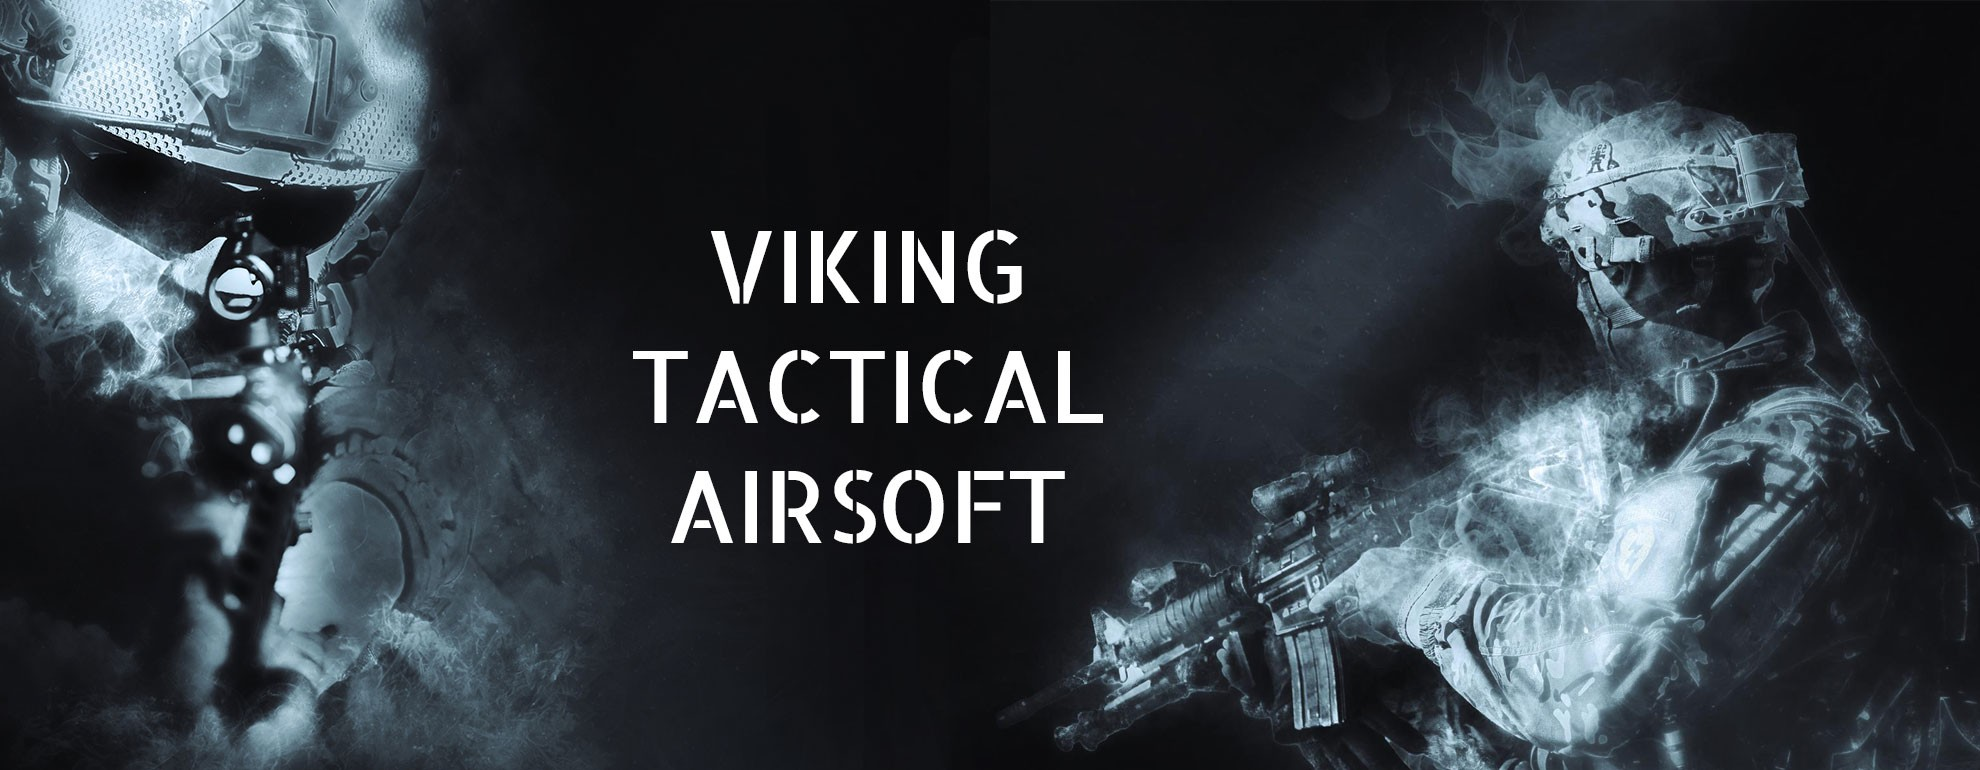 Viking Tactical Airsoft